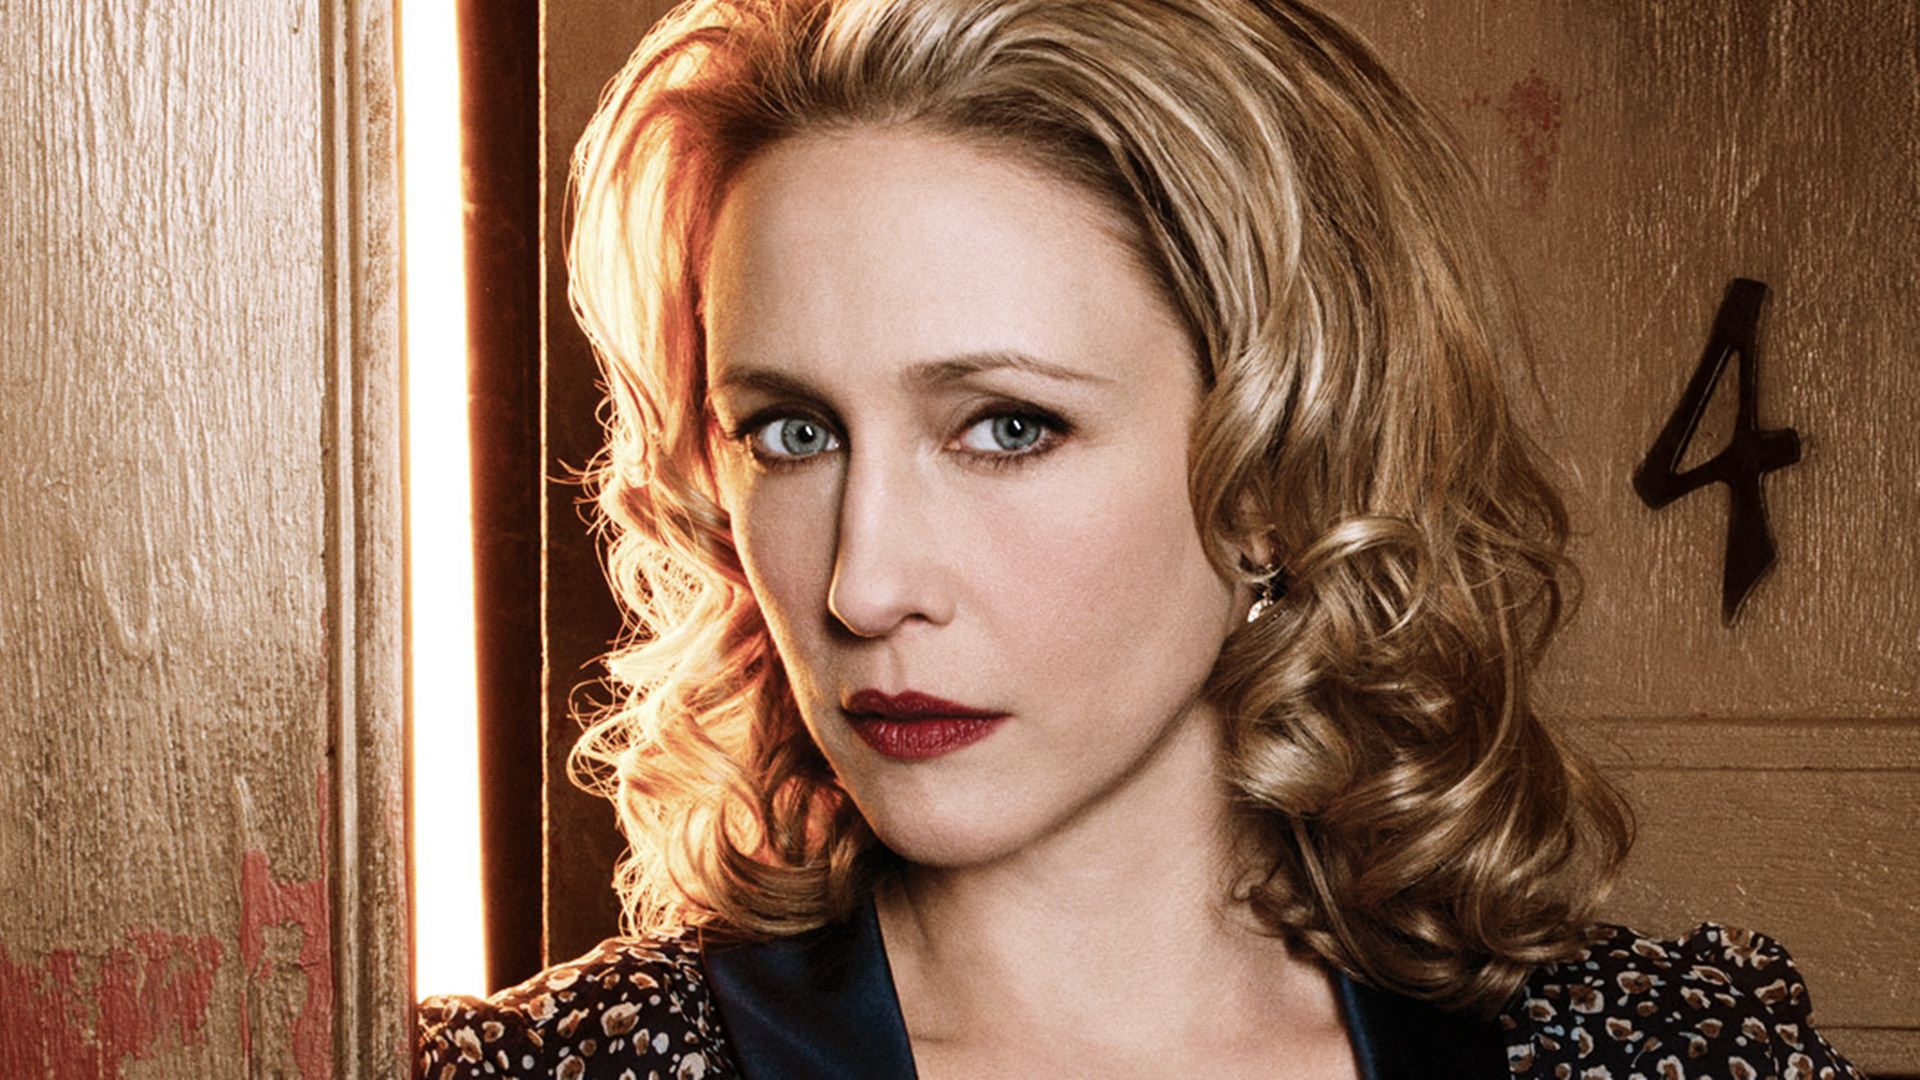 Vera Farmiga Wallpapers Images Photos Pictures Backgrounds Vera Farmiga